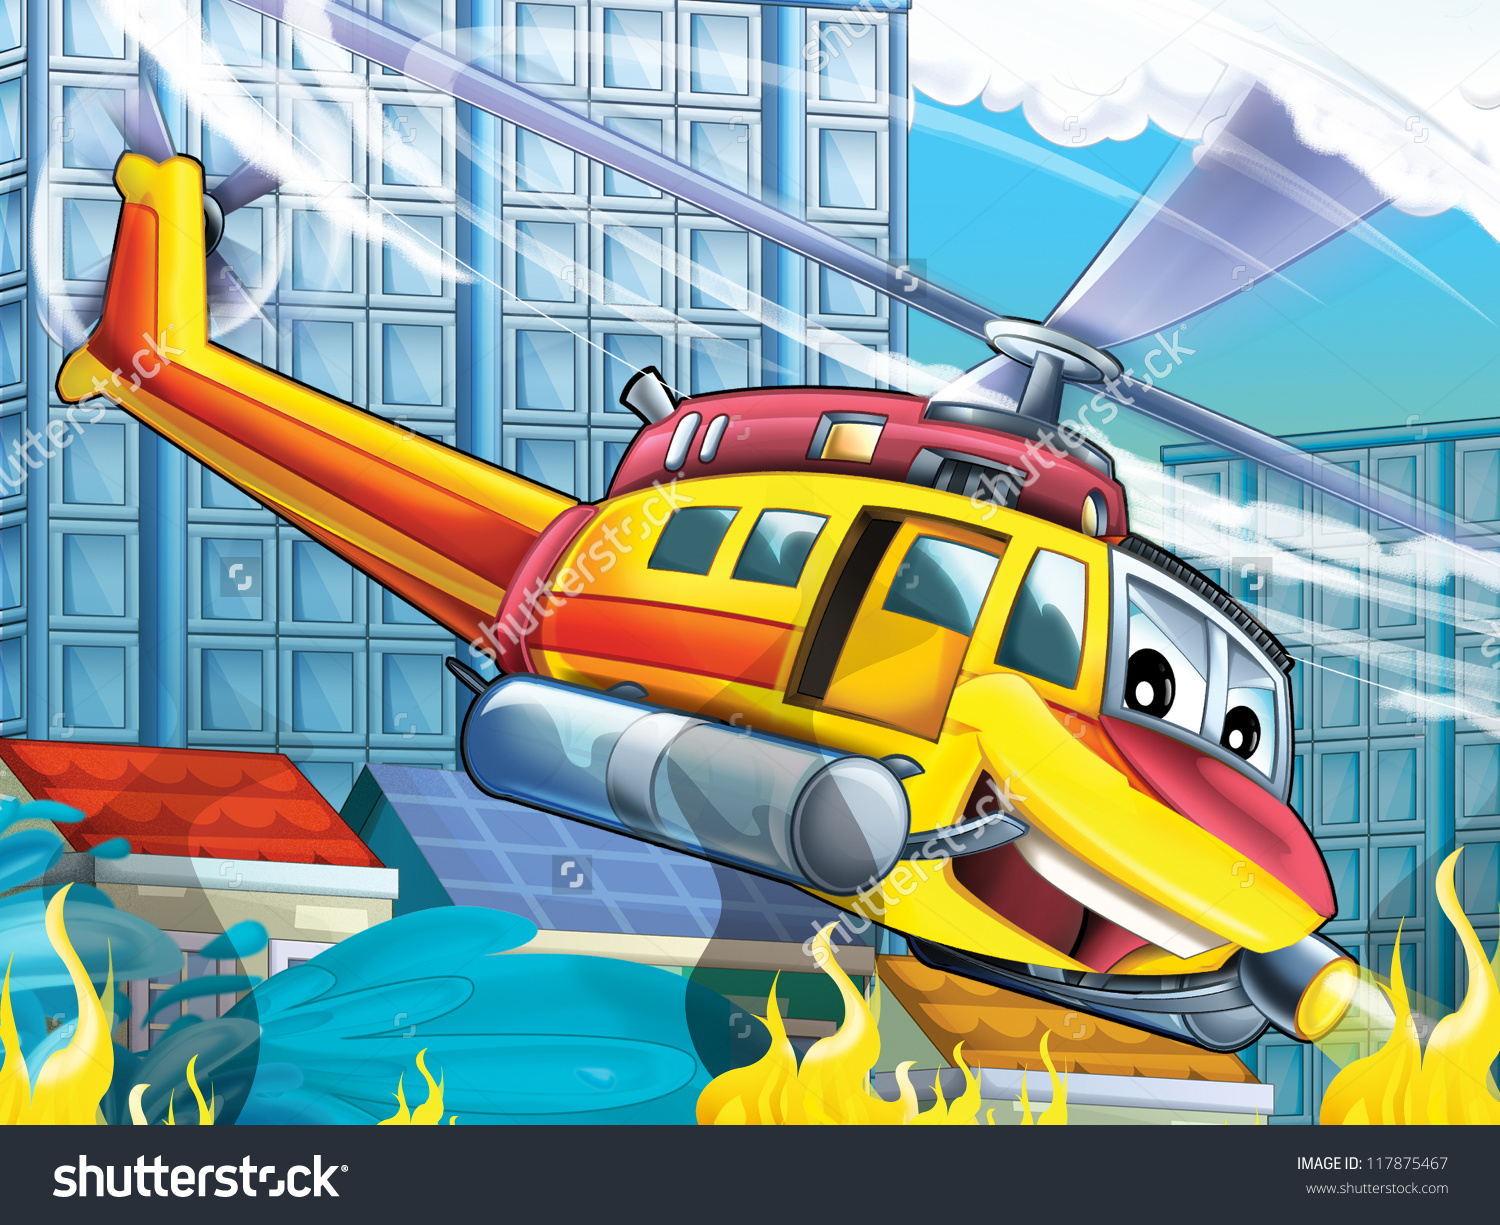 Cartoon Helicopter Rescue Situation Fire Vertical Stock.